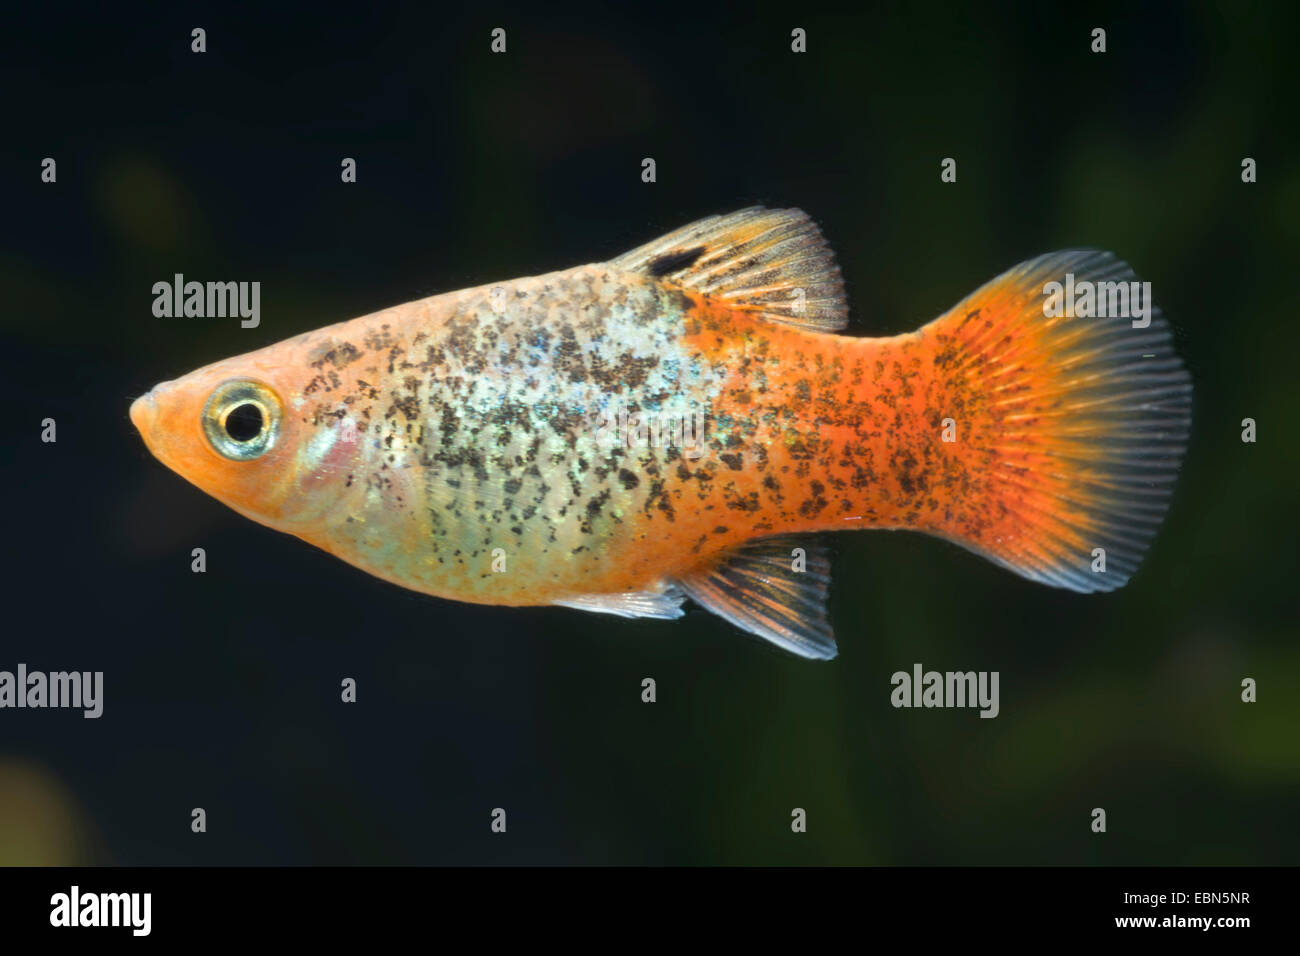 southern platyfish, Maculate Platy (Xiphophorus maculatus), breed Blue Red-tail - Stock Image